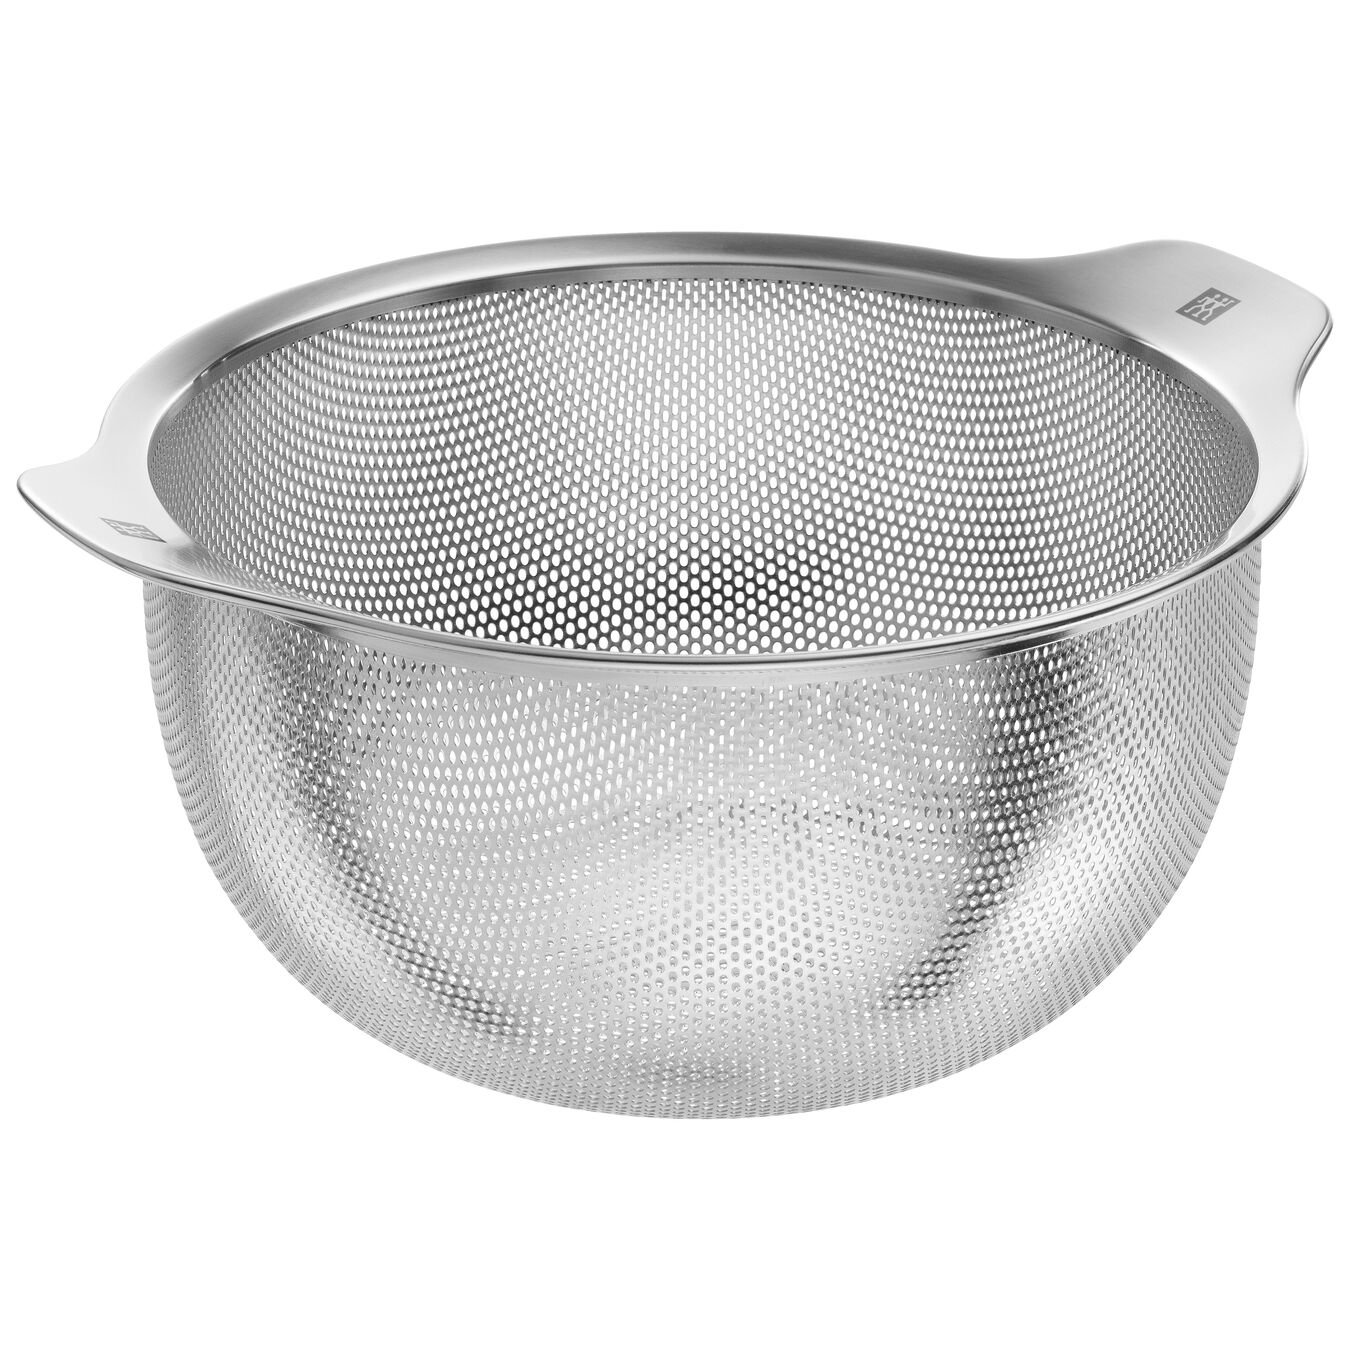 9.5-inch, 18/10 Stainless Steel, Colander,,large 1